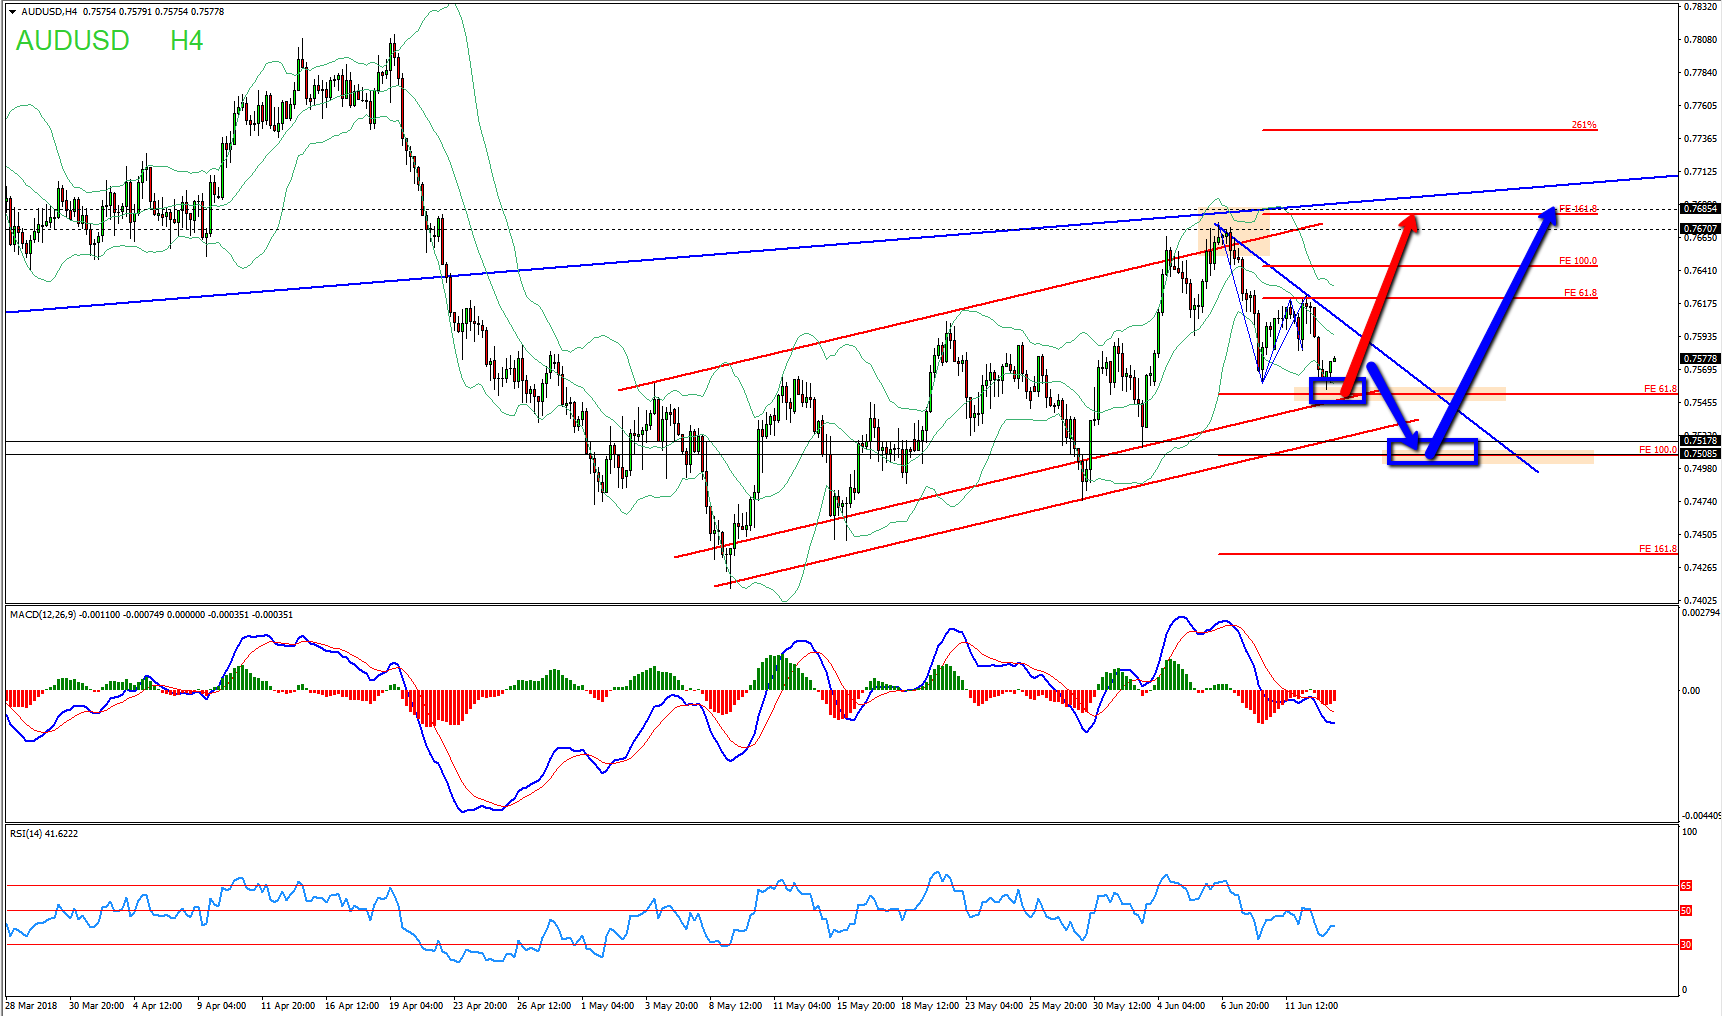 AUDUSD Bullish Channel Provides Buy Opportunity